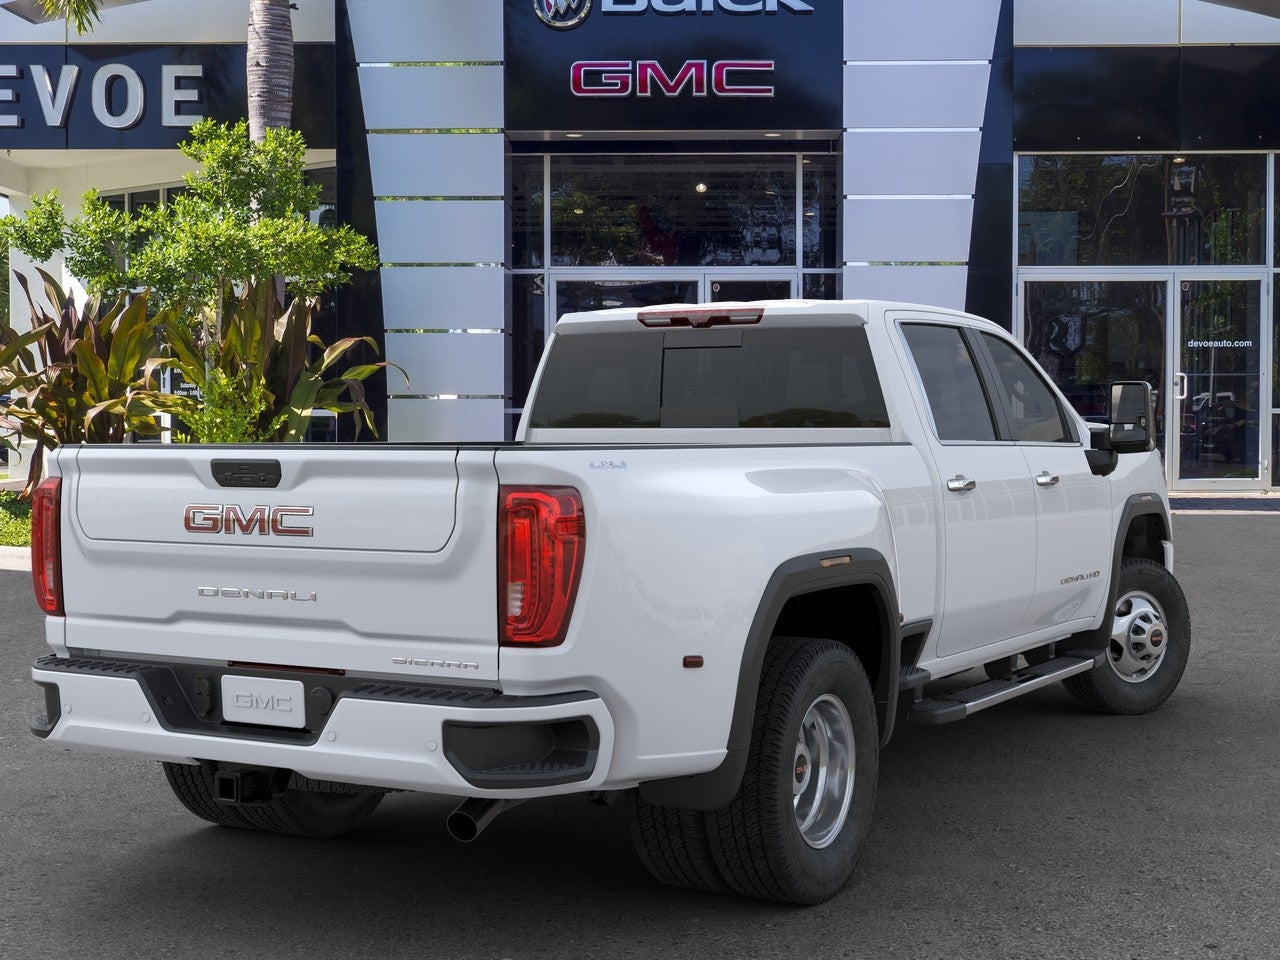 2020 GMC Sierra 3500 Crew Cab 4x4, Pickup #T20485 - photo 17